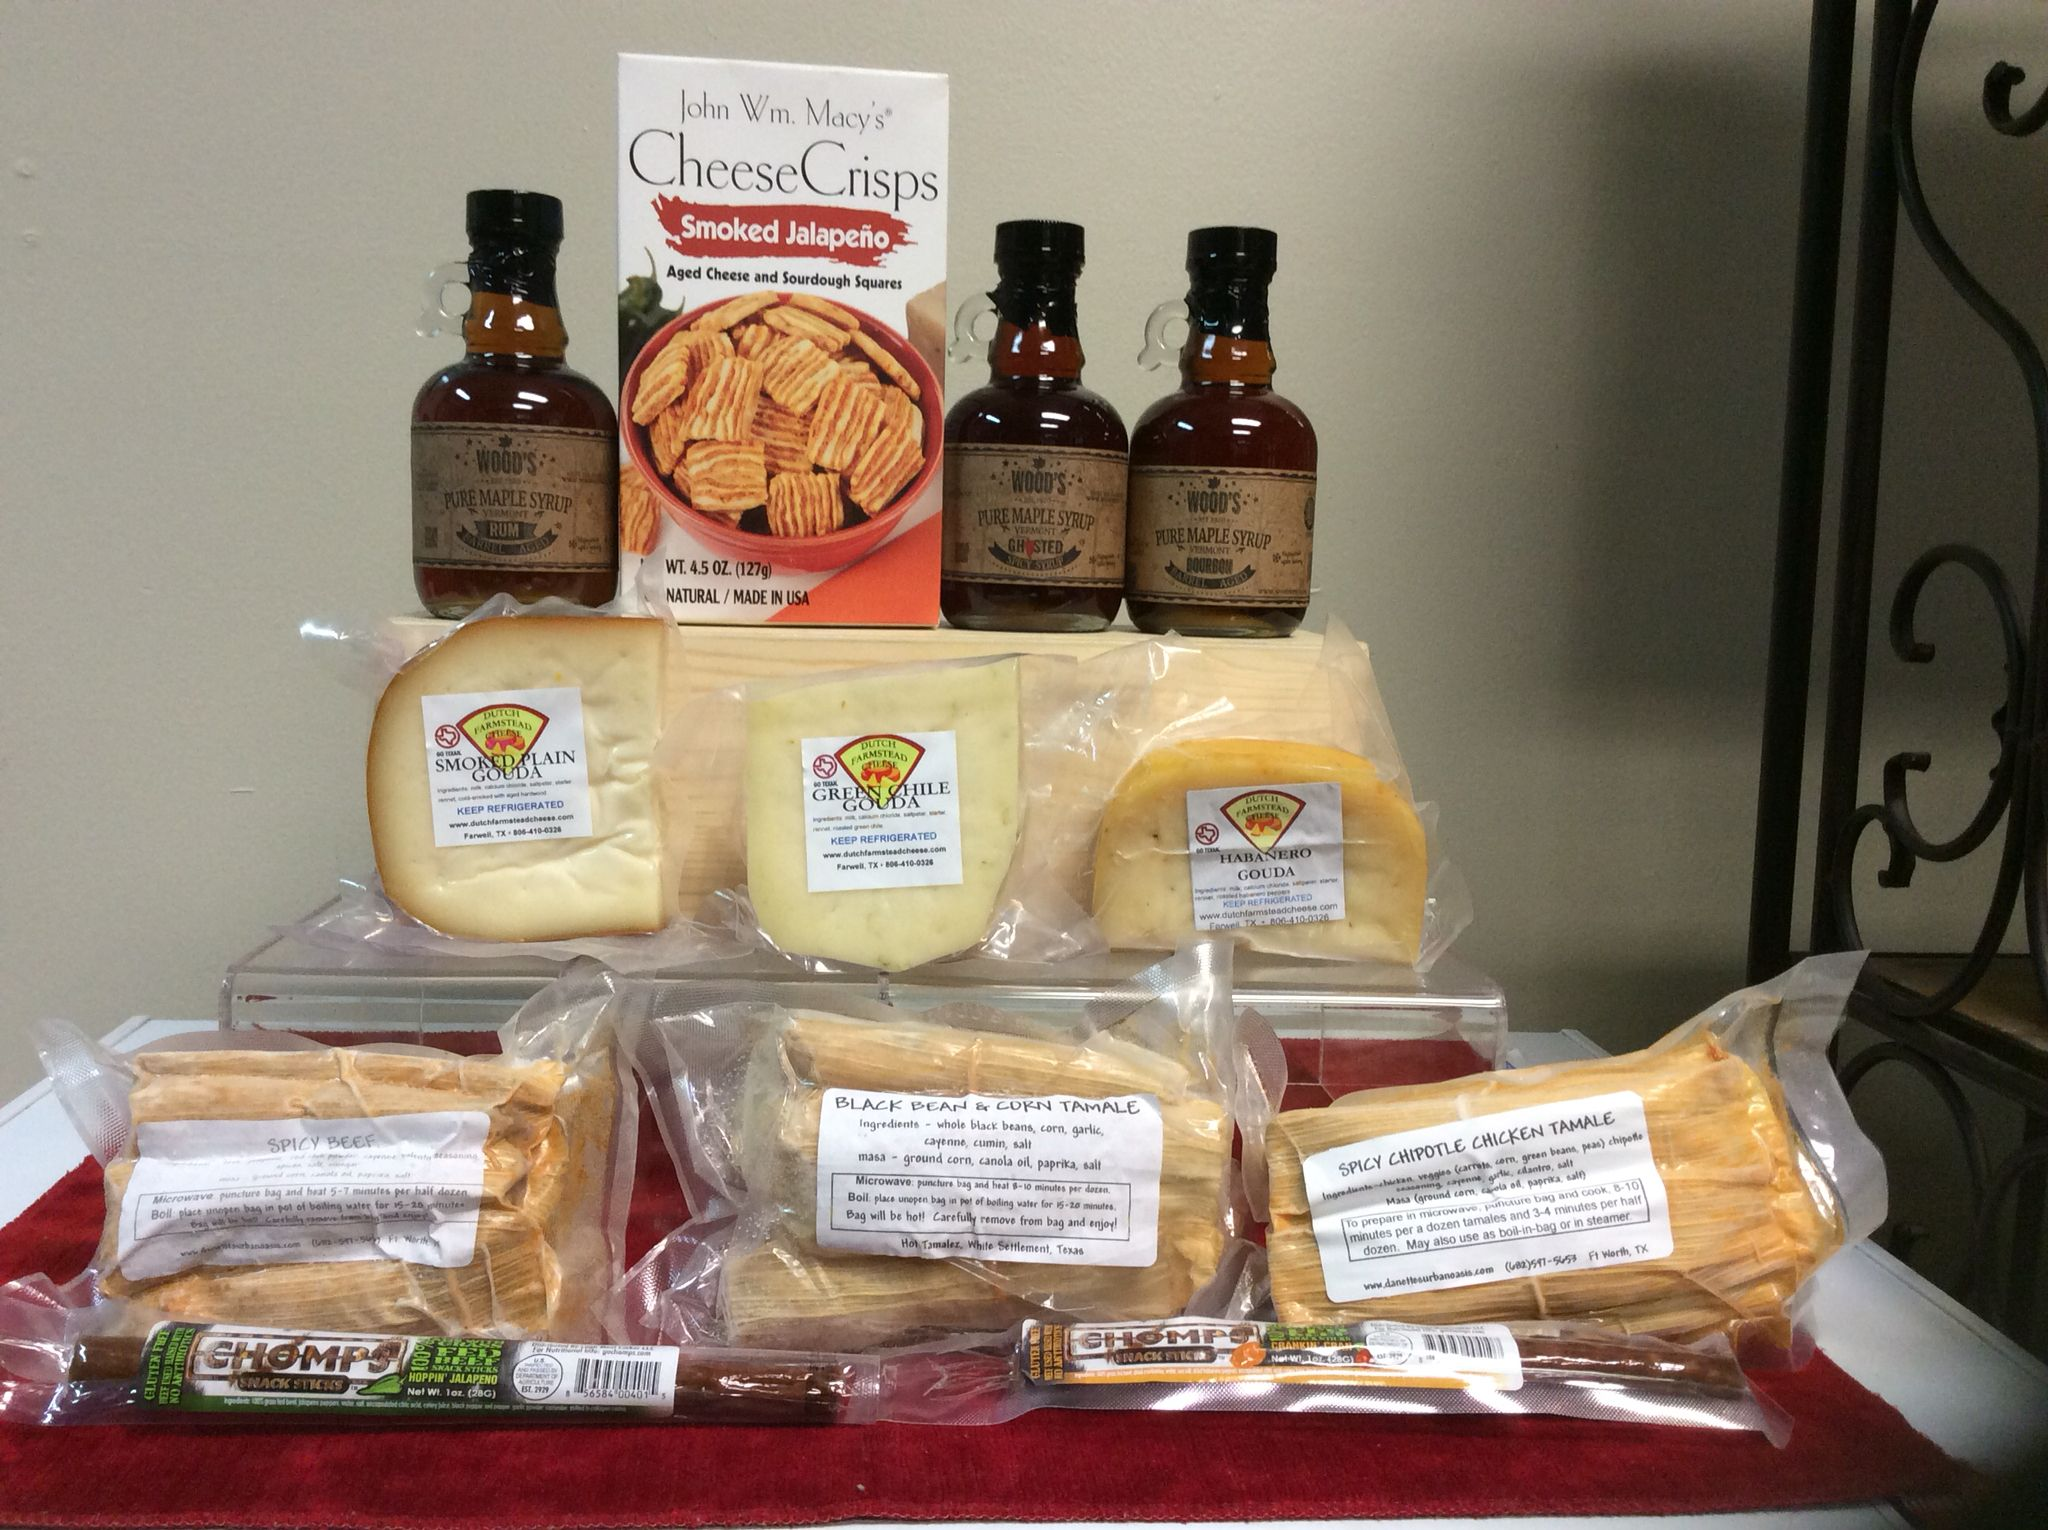 We have selected the best made in usa gourmet foods to add to our we have selected the best made in usa gourmet foods to add to our gift baskets at danettes urban oasis enjoy a woods syrups gouda cheese gluten free negle Gallery